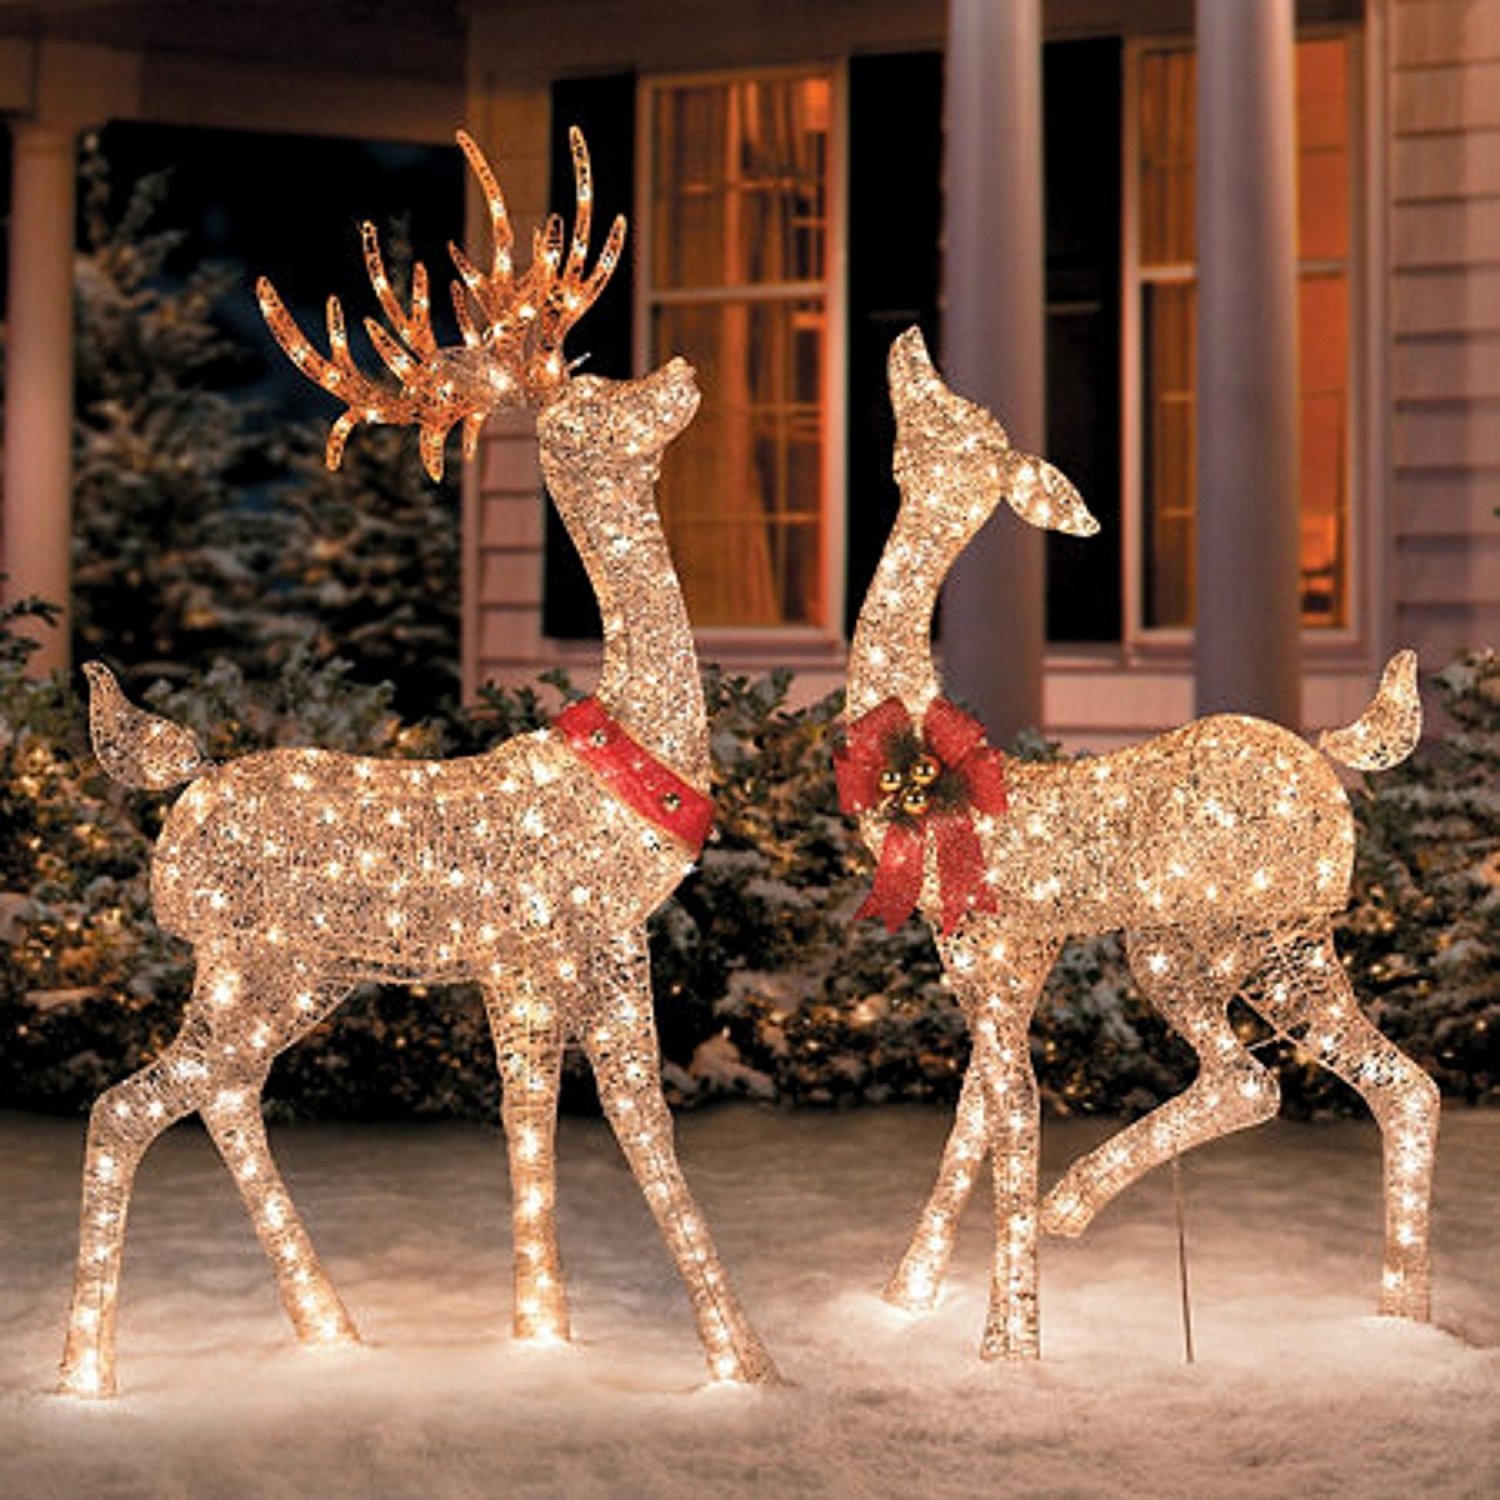 Outdoor Wall Christmas Decorations 21 Christmas Outdoor Decorations Ensure It Makes A Visual